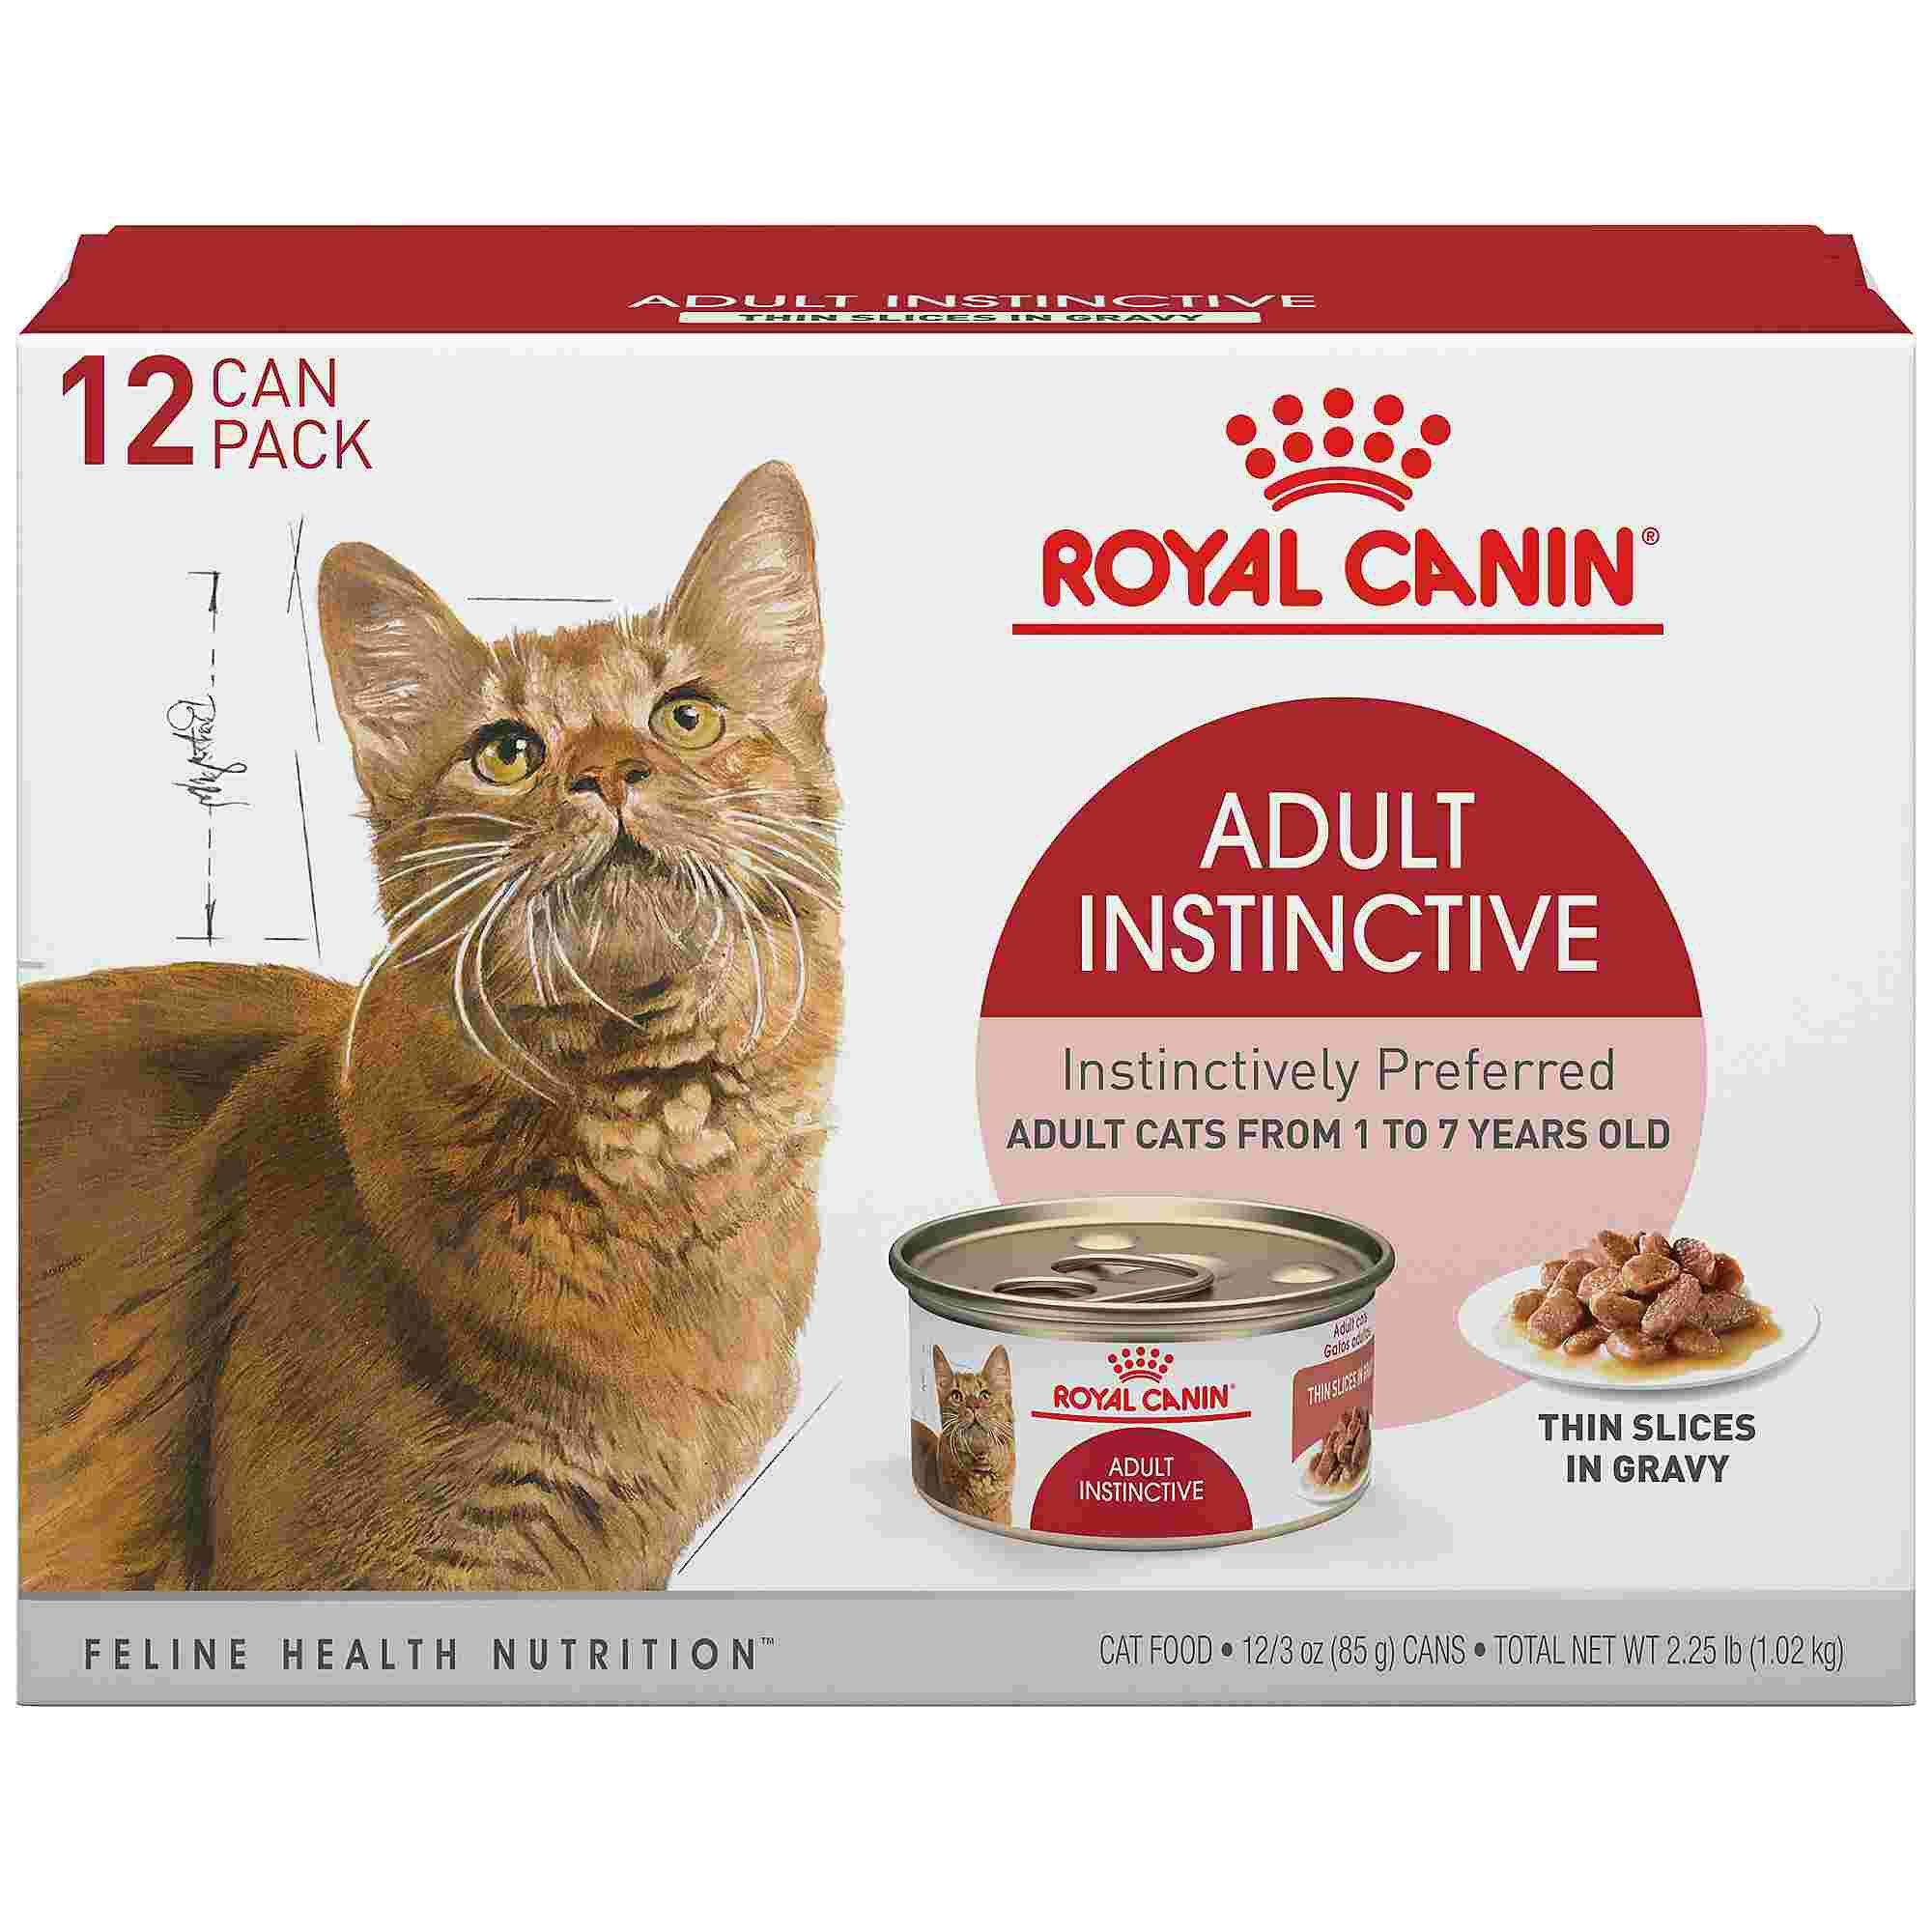 Royal Canin Adult Instinctive Thin Slices in Gravy Wet Cat